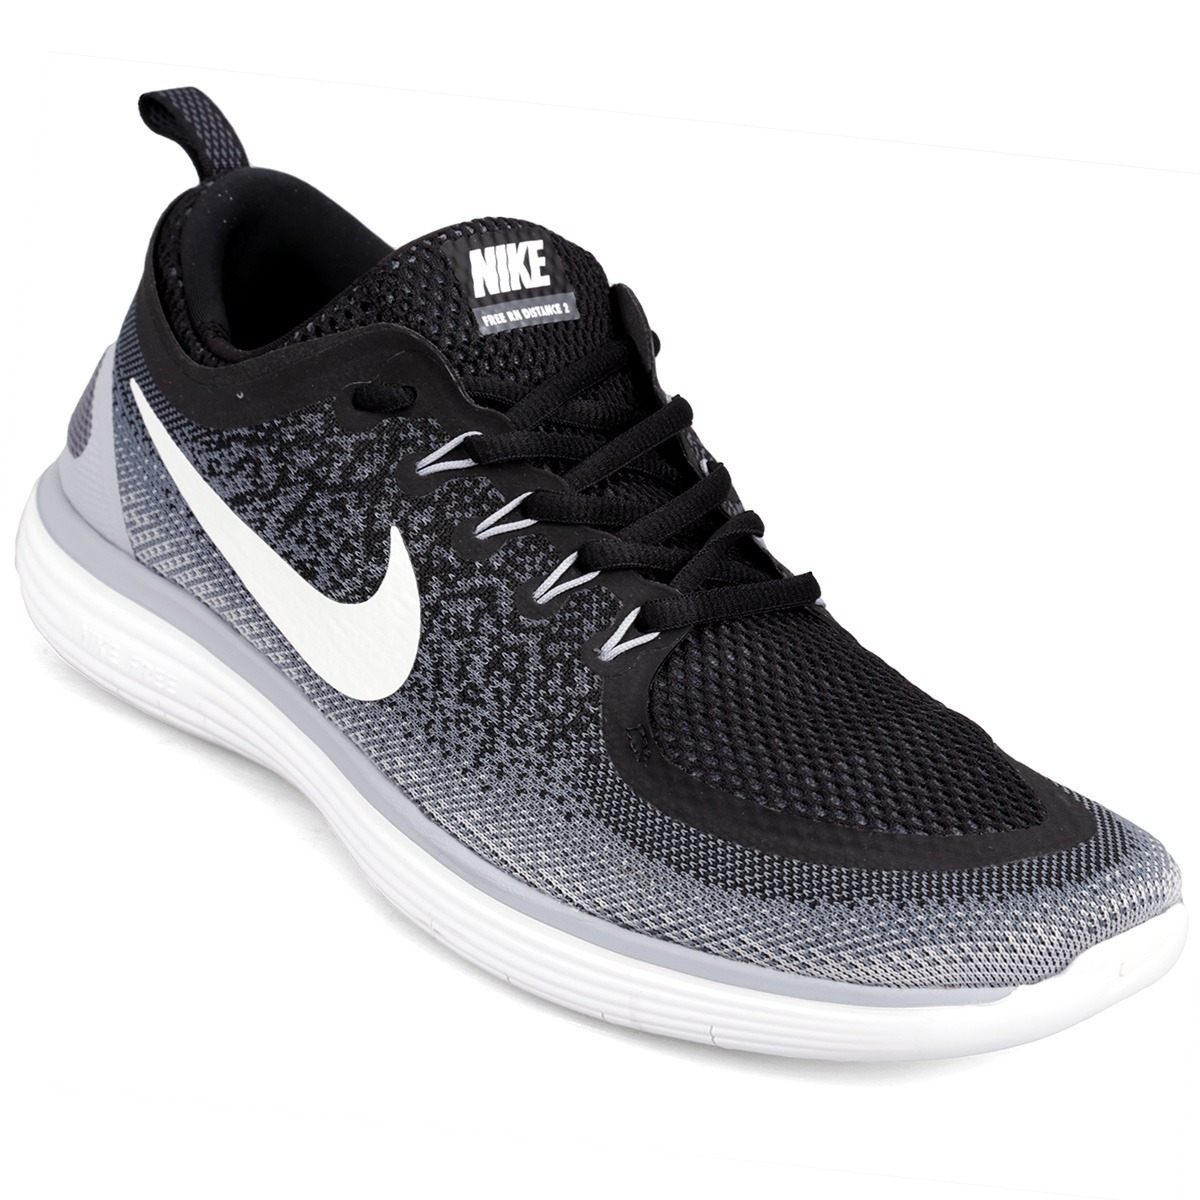 Nike Free RN Distance hombre